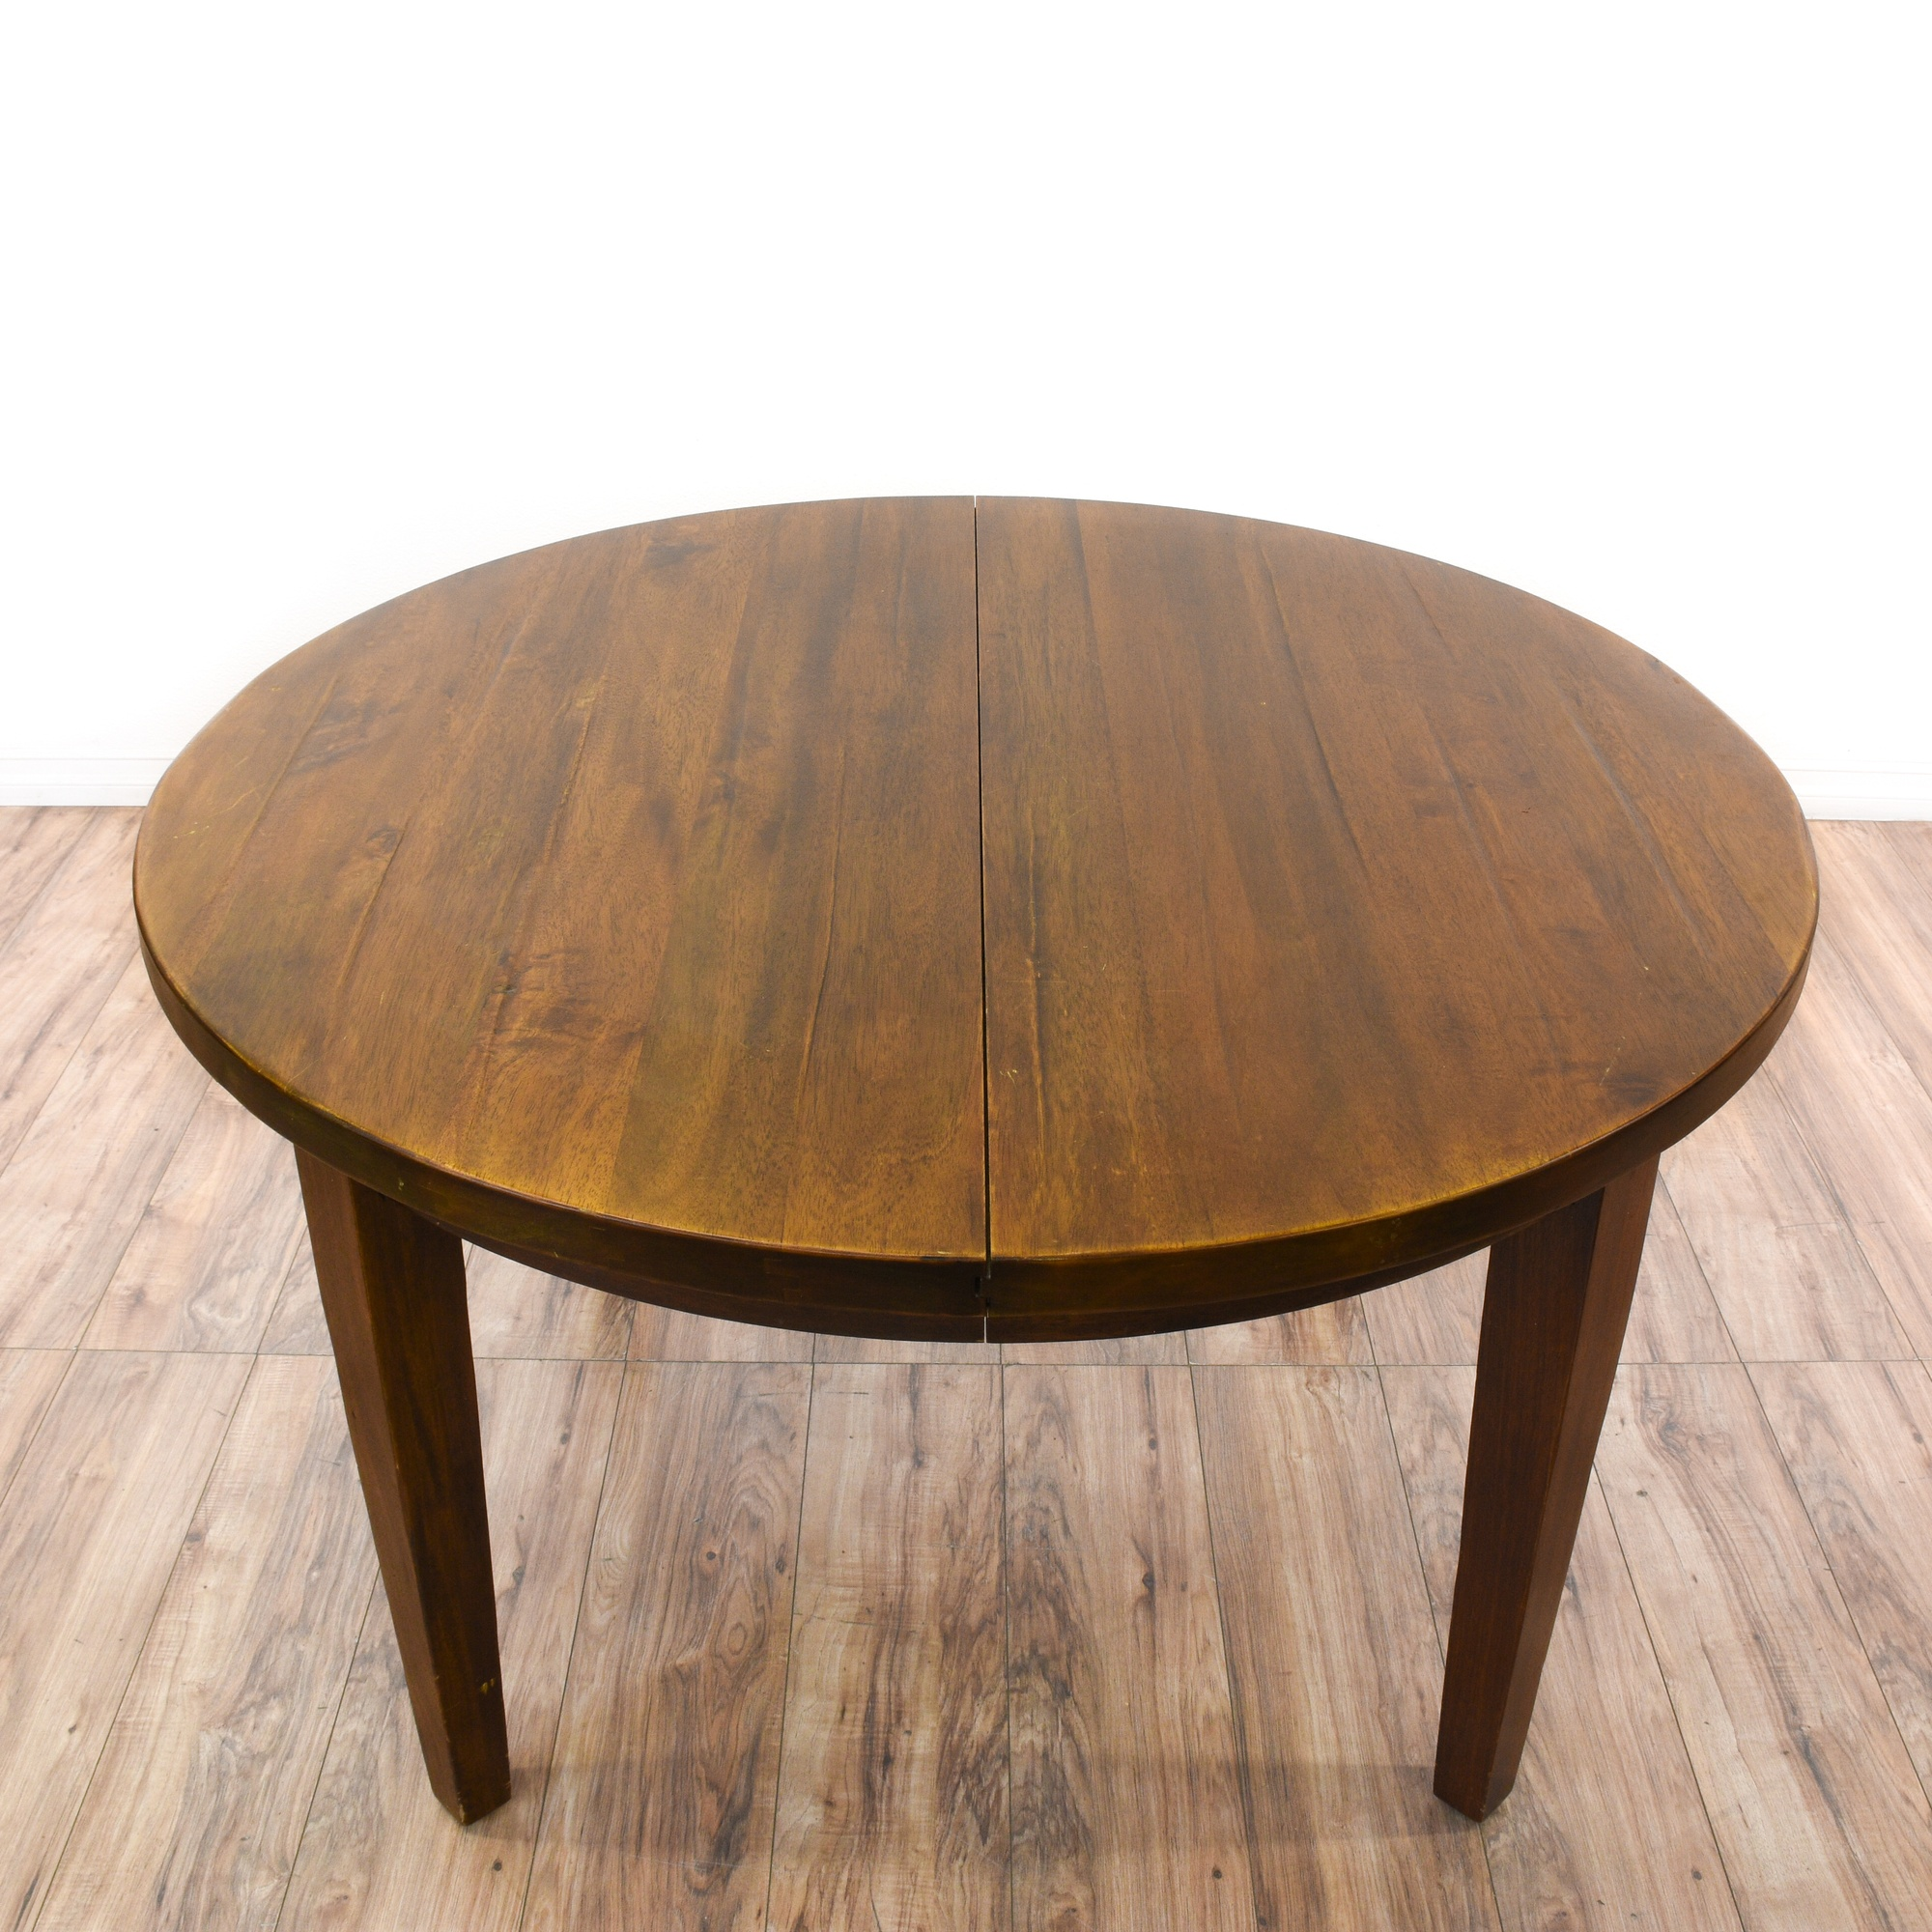 Round Solid Wood Dining Table w 2 Leaves